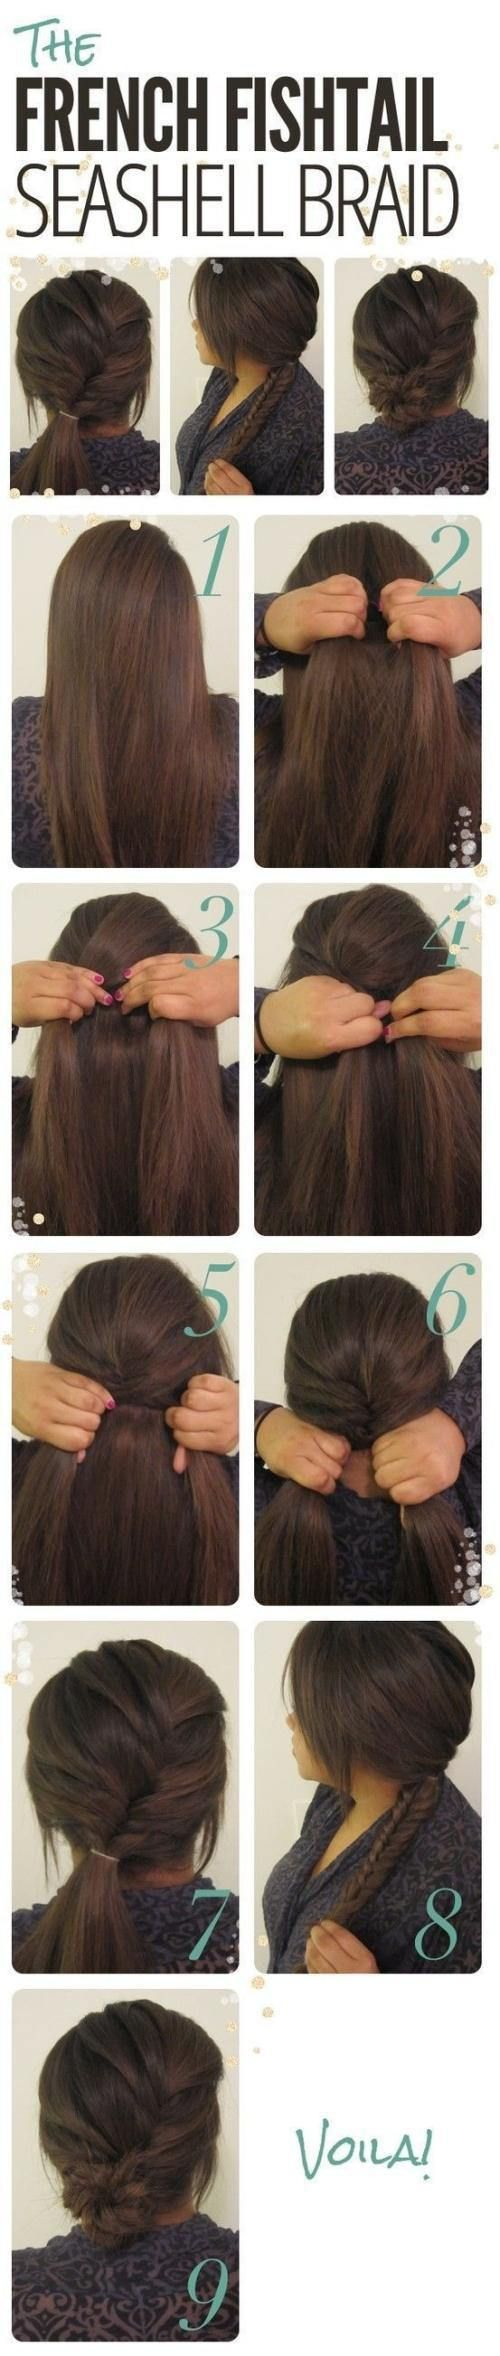 The French Fishtail Seashell Braid - Do It Yourself Hairstyle Ideas : theBERRY